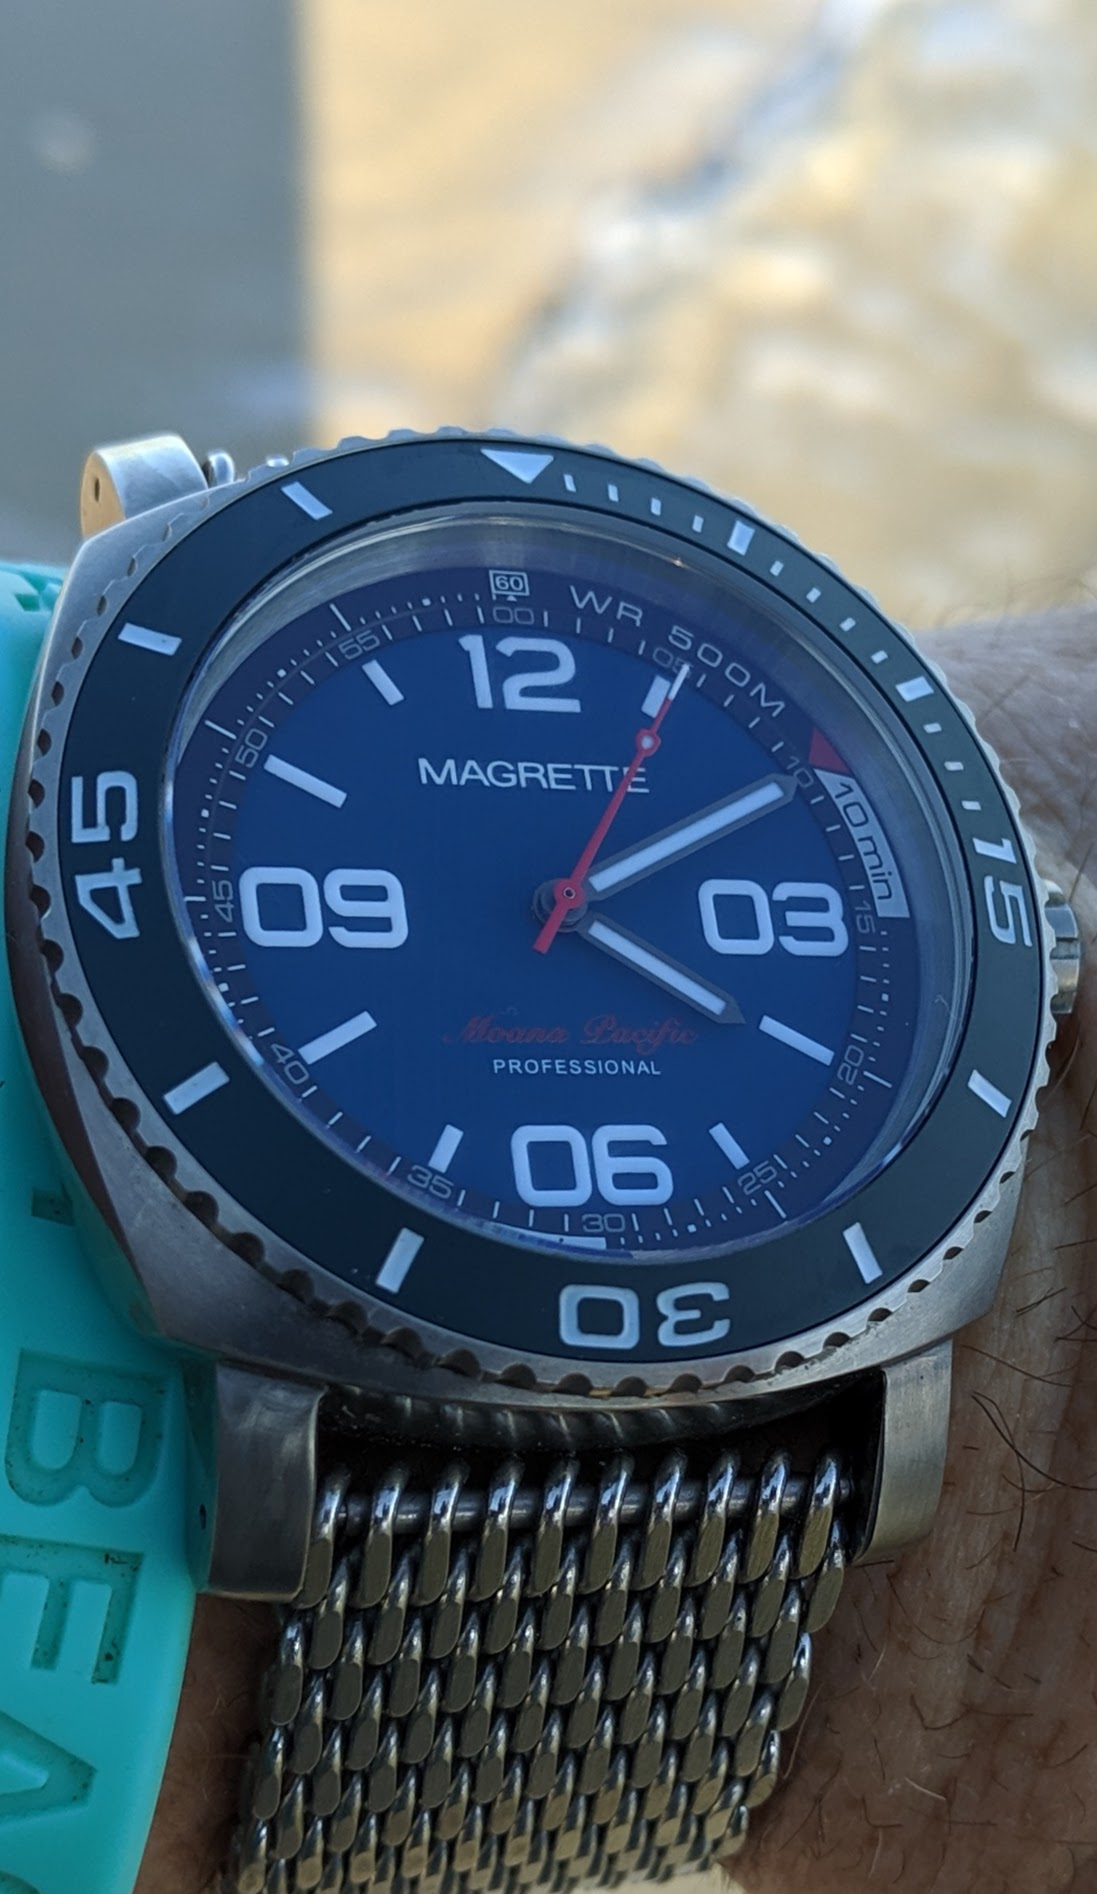 Magrette Moana Pacific Professional Kara edition watch at beach